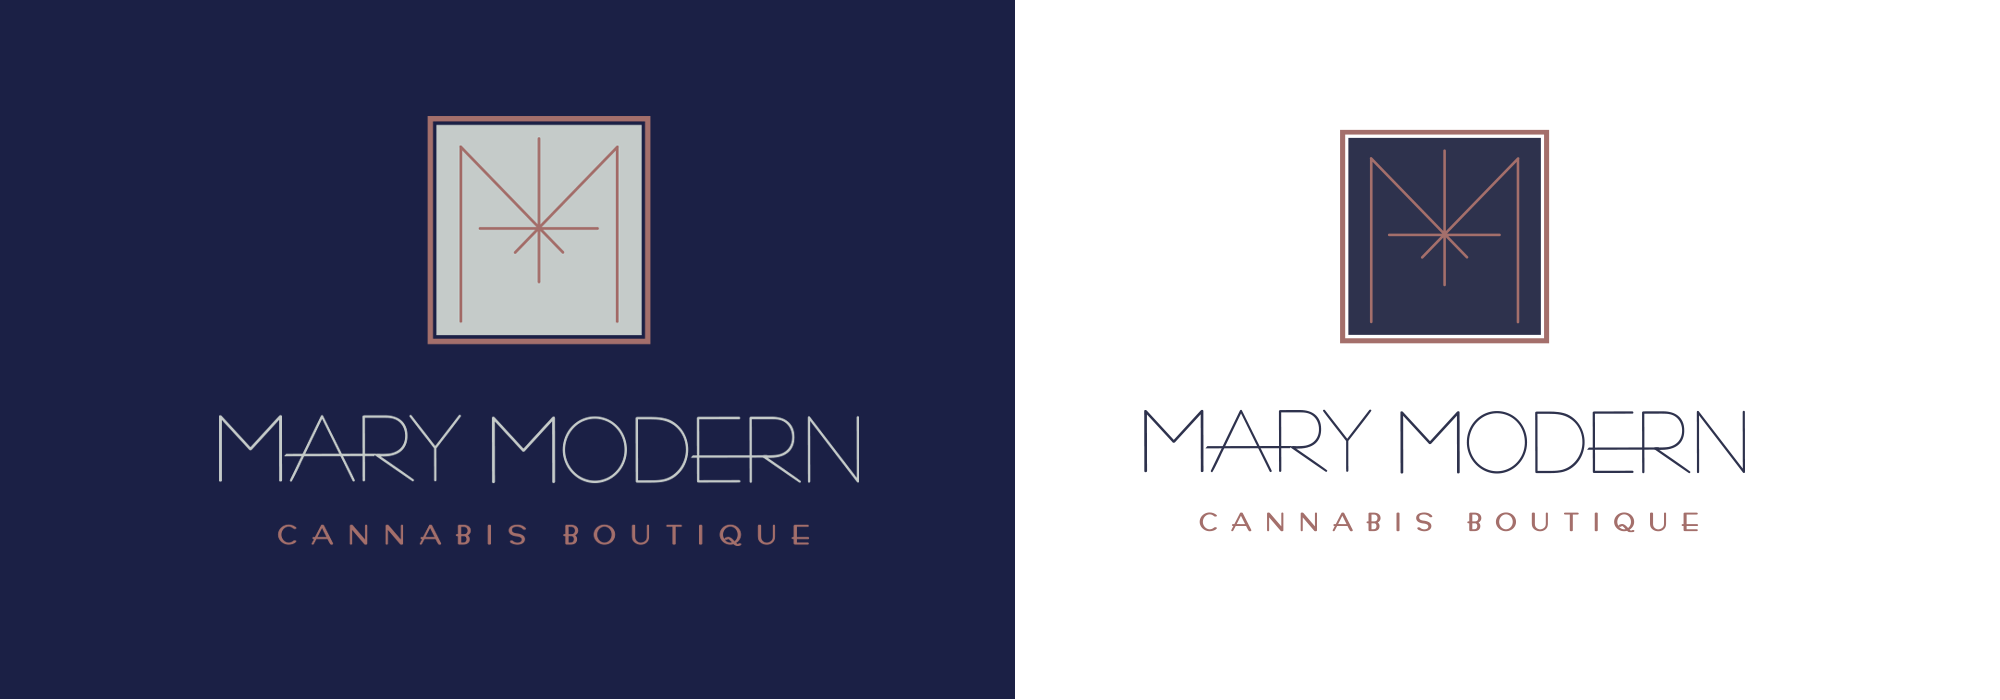 Mary Modern San Francisco Dispensaries